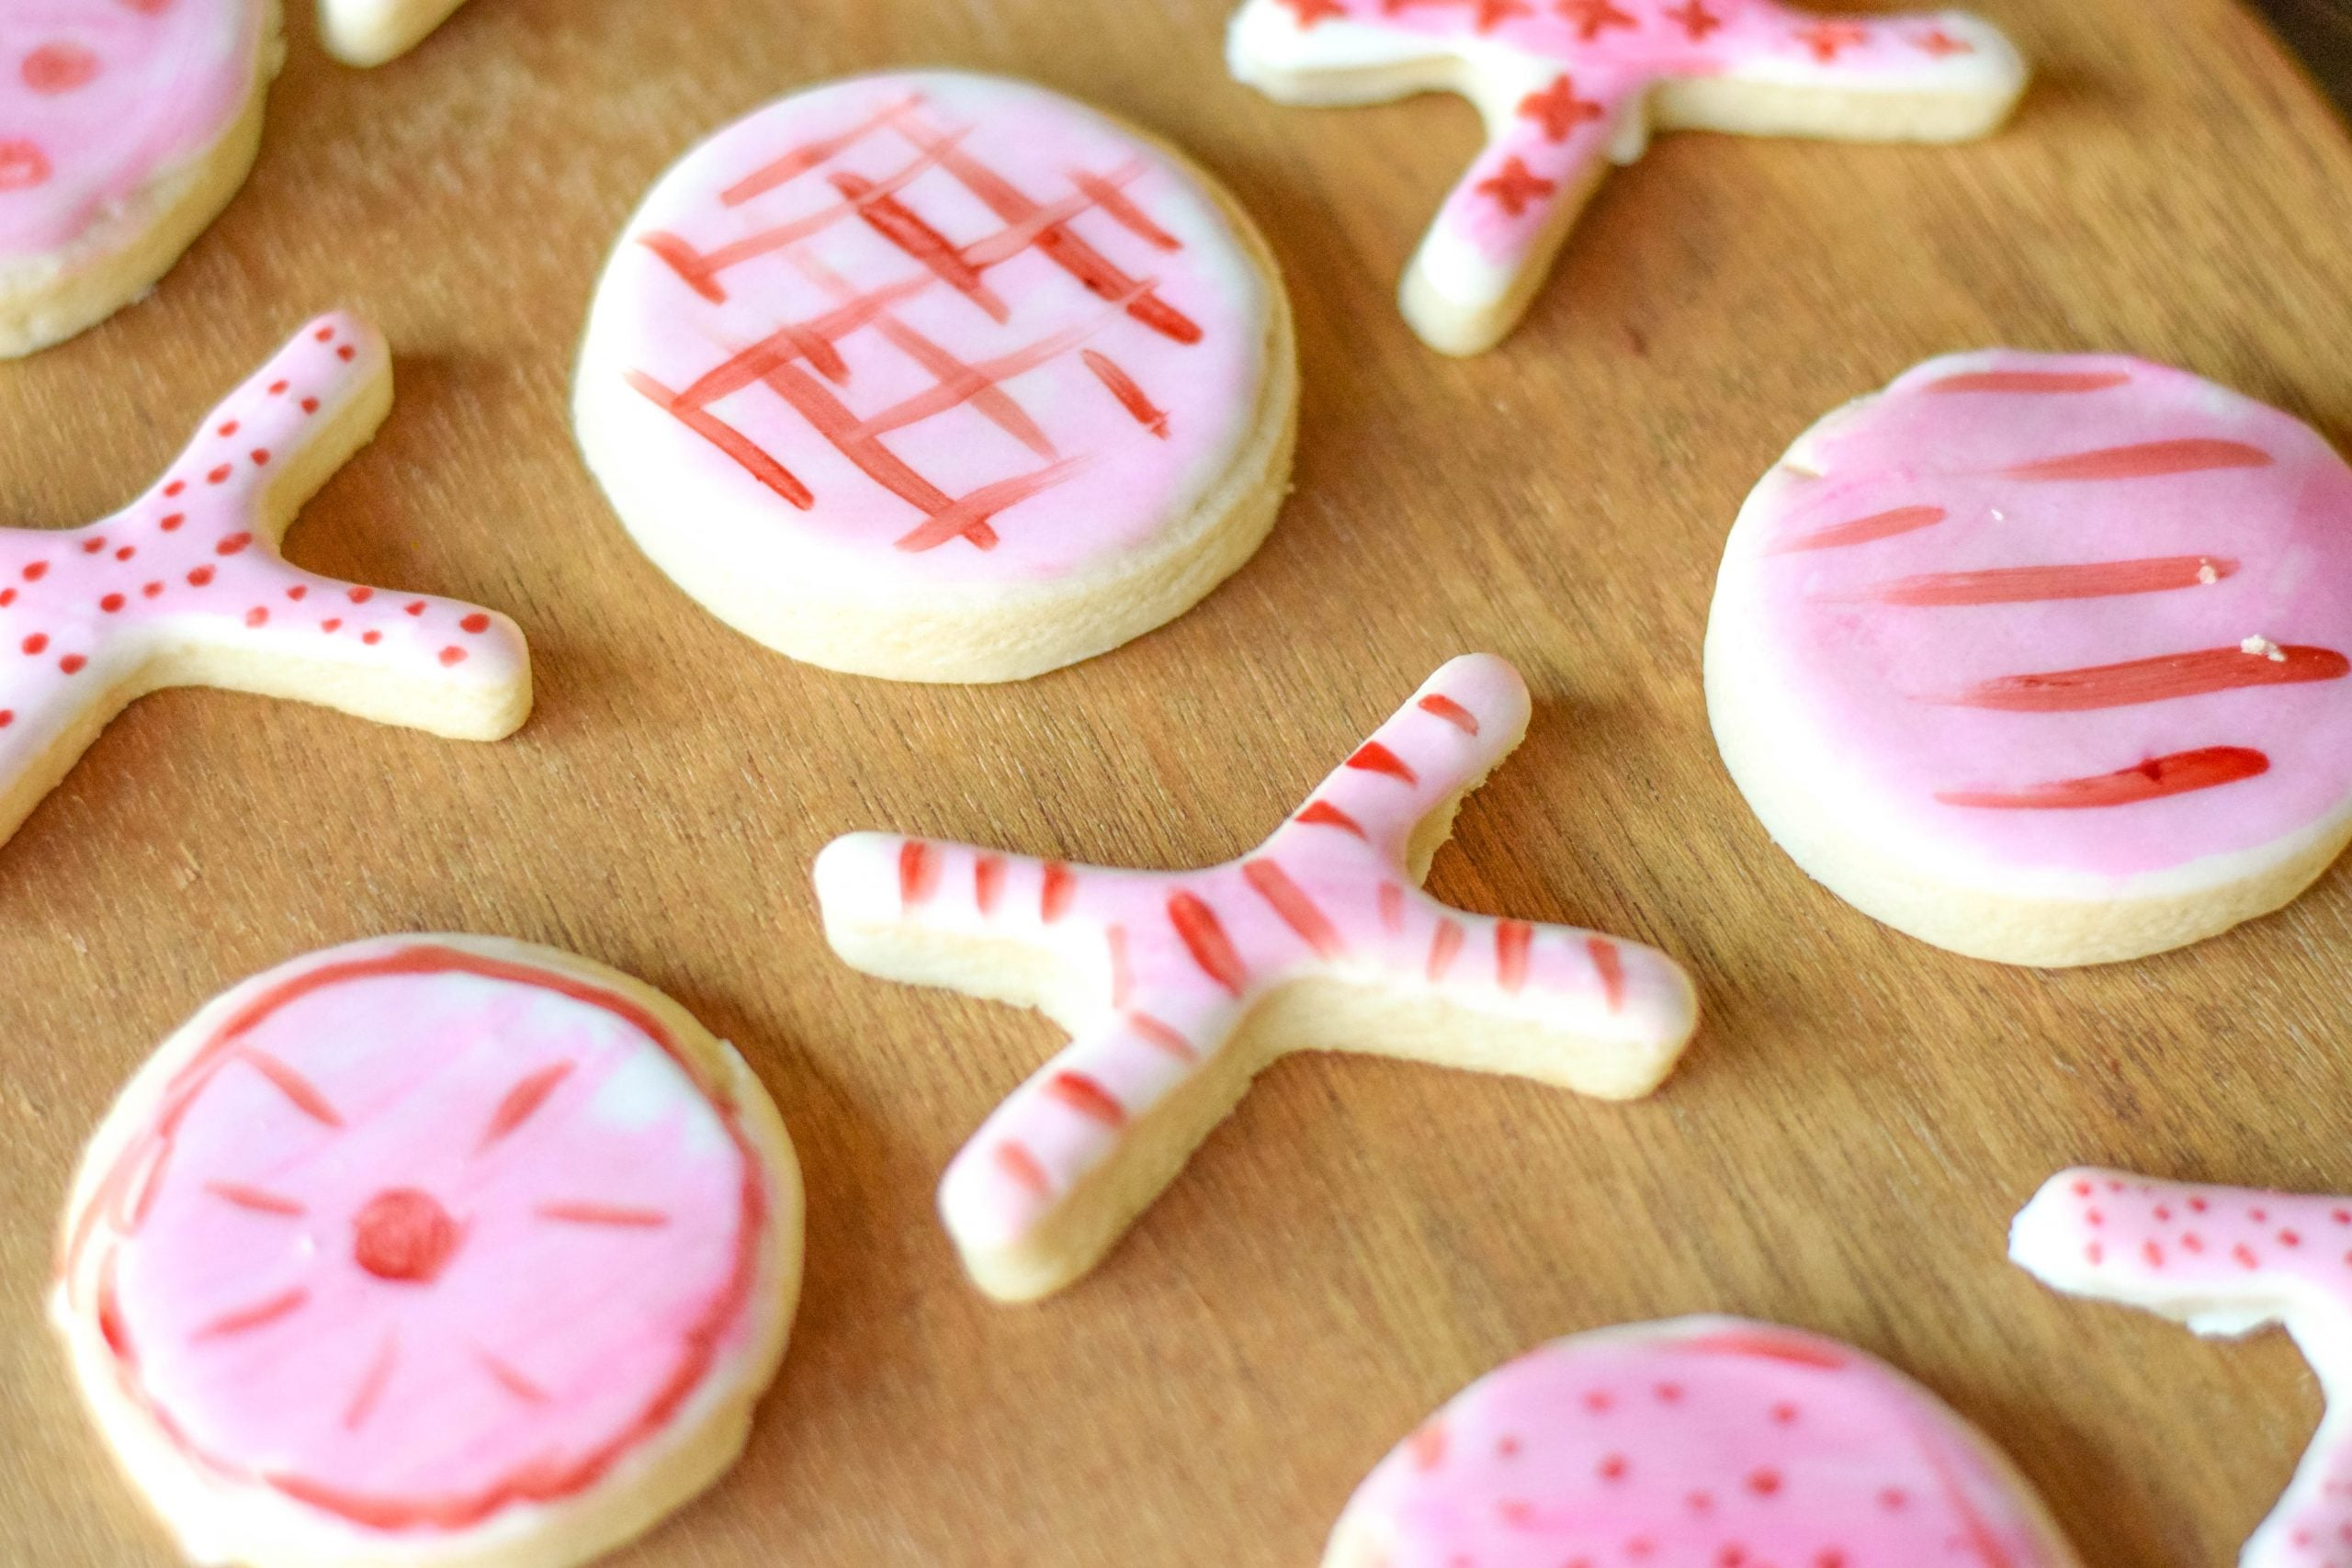 XOXO Painted Sugar Cookies For Valentine's Day - Delicious hand painted sugar cookies that come together easily and will impress all your friends! | XOXO Cookies - Painted Sugar Cookies - Hand Painted Sugar Cookies - Valentine's Day Cookies - Paint Your Own Cookie